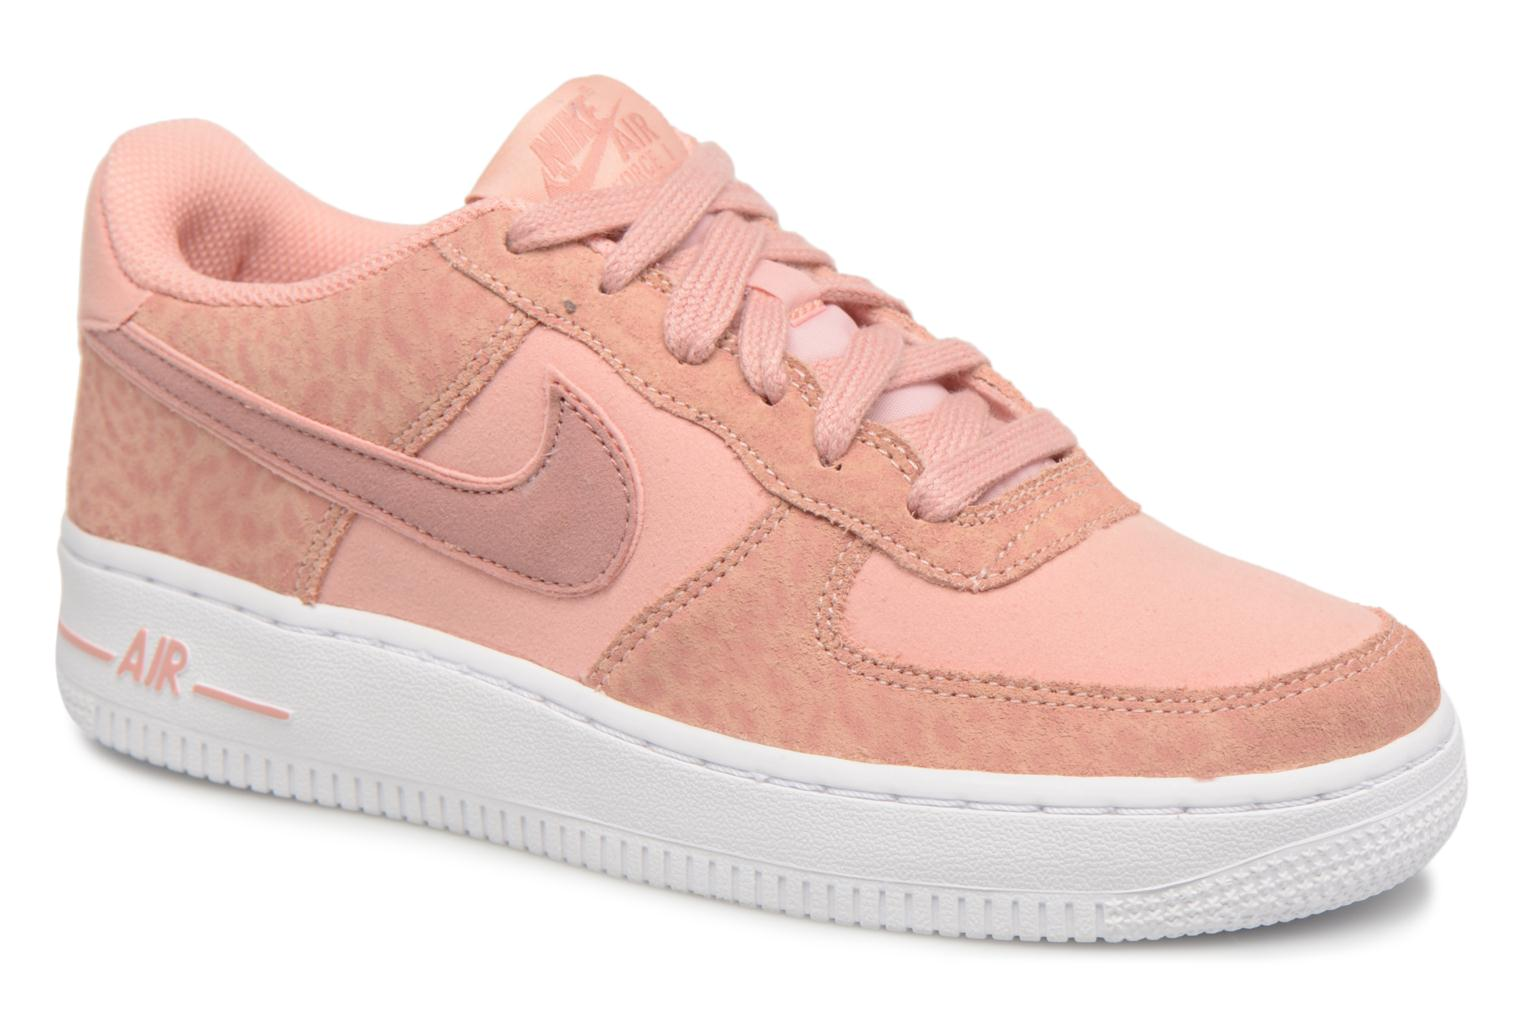 Nike Air Force 1 Lv8 (Gs) Coral Stardust/Rust Pink-White